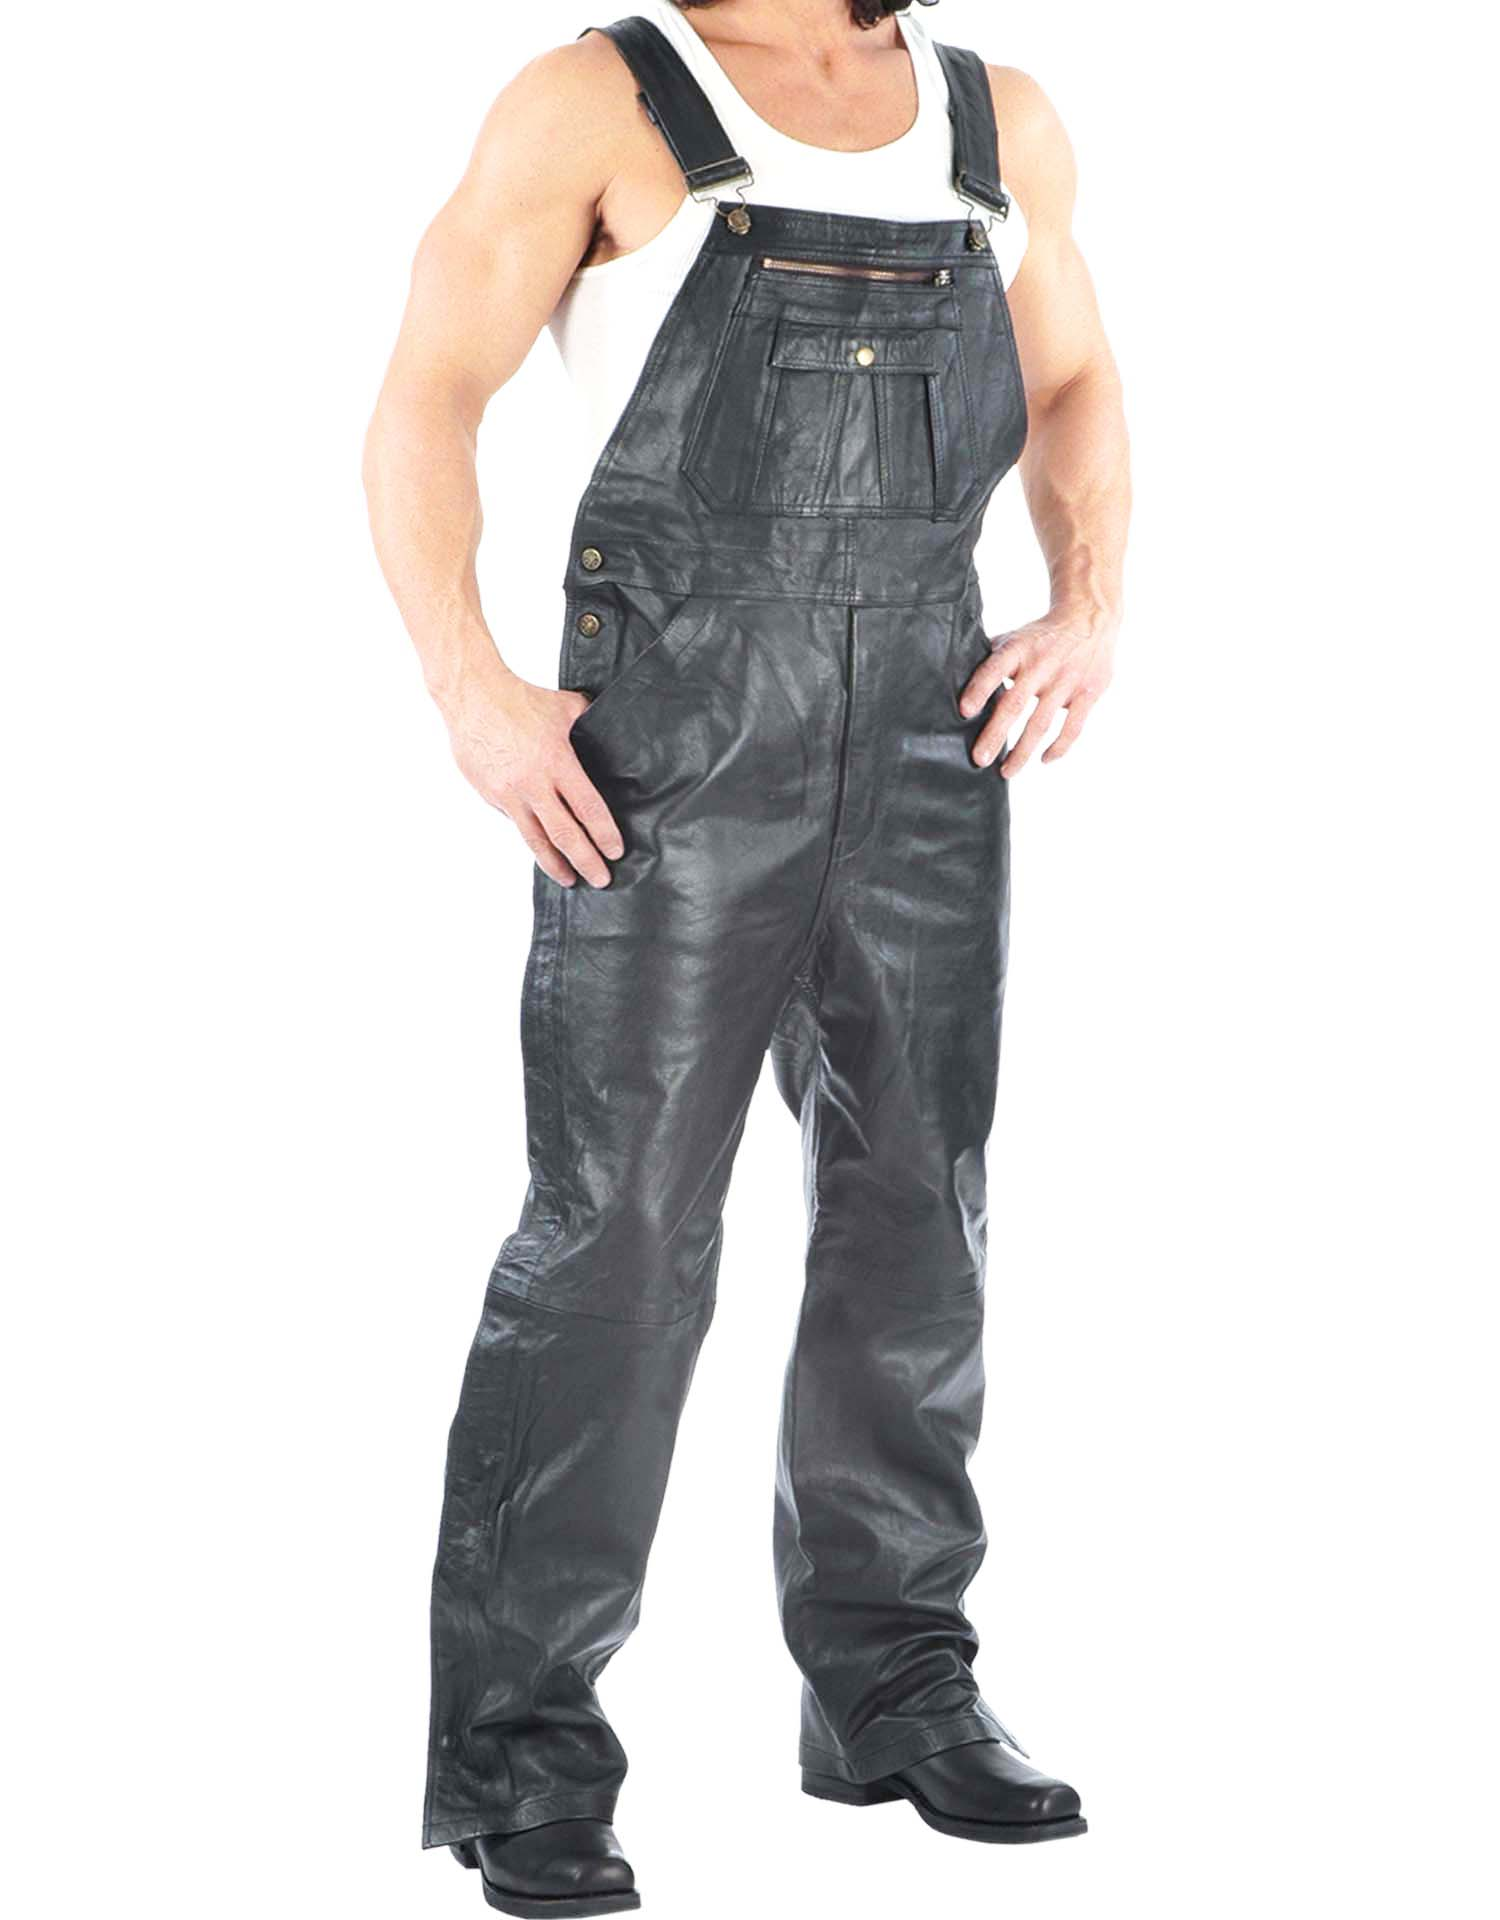 Men's Premium Black Leather Overalls (Size: Small)